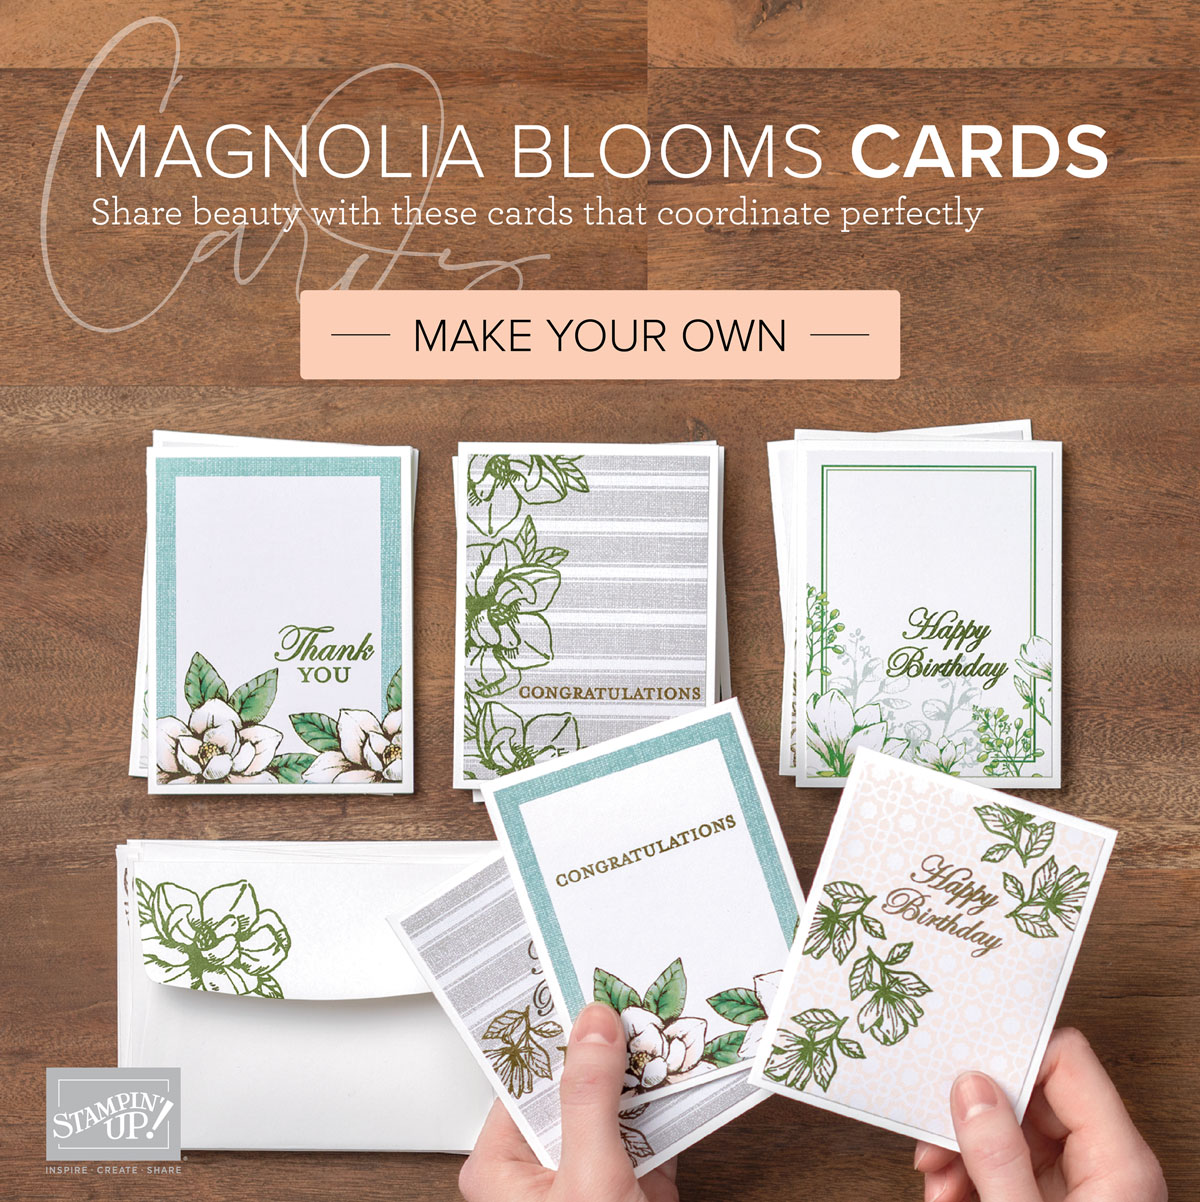 MAGNOLIA BLOOMS CARDS BUNDLE